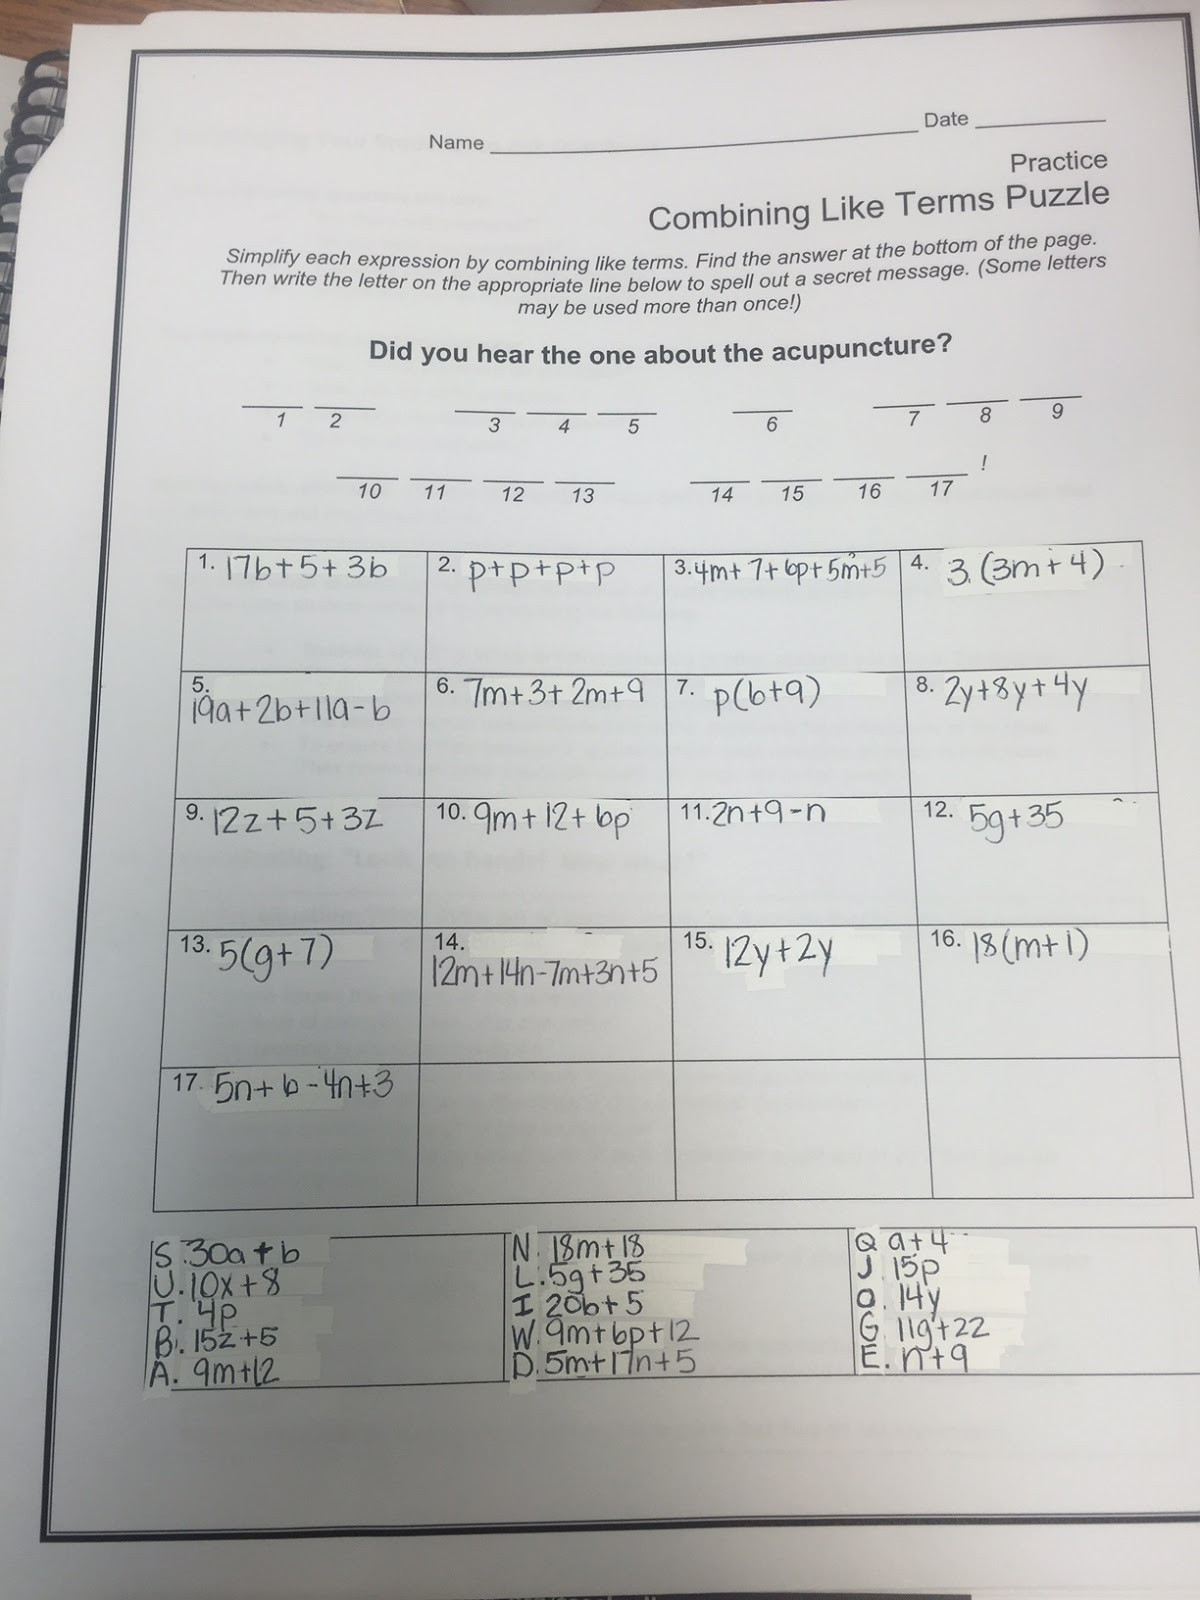 Combining Like Terms Worksheet Answers Bining Like Terms Addition Worksheet